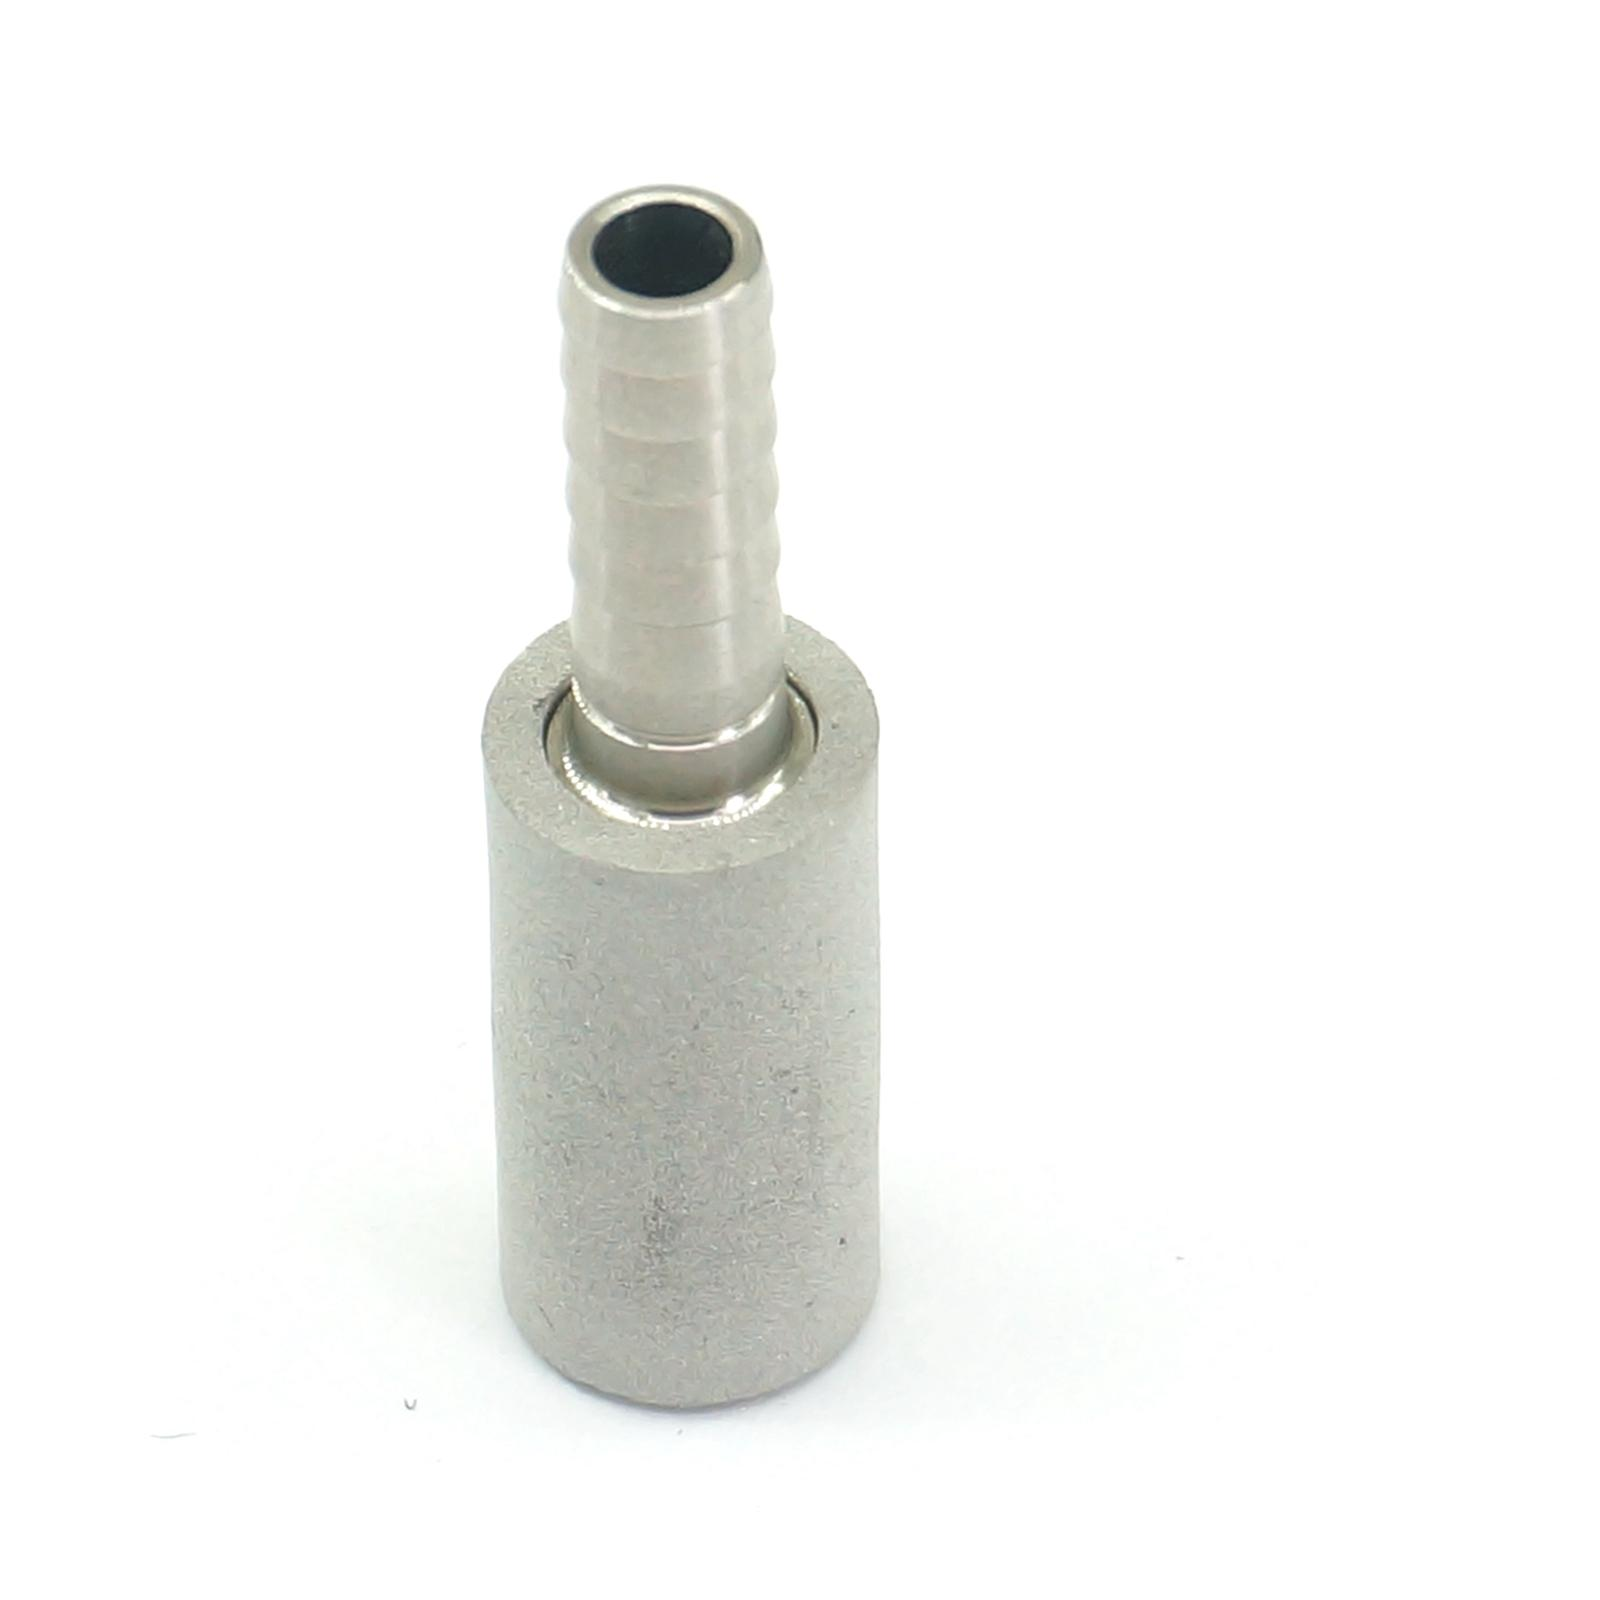 0.5 Micron 316 Stainless Steel Diffusion Aeration Oxygen Stone For Home Brew